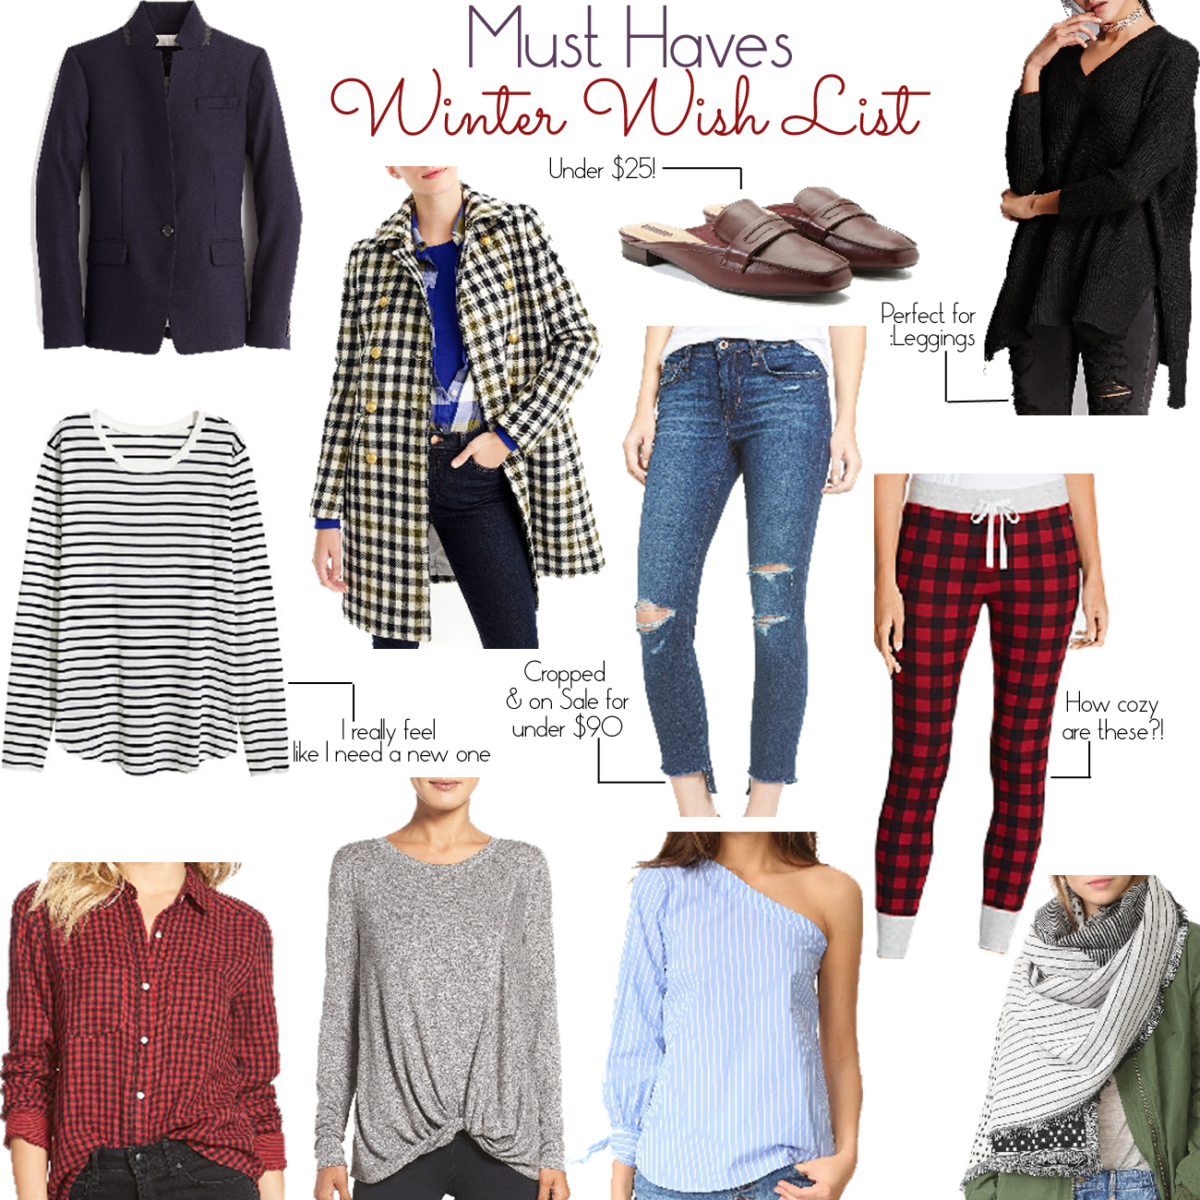 Peaches in a Pod breaks down the best winter wish list which includes items like loafer mules and oversized sweaters